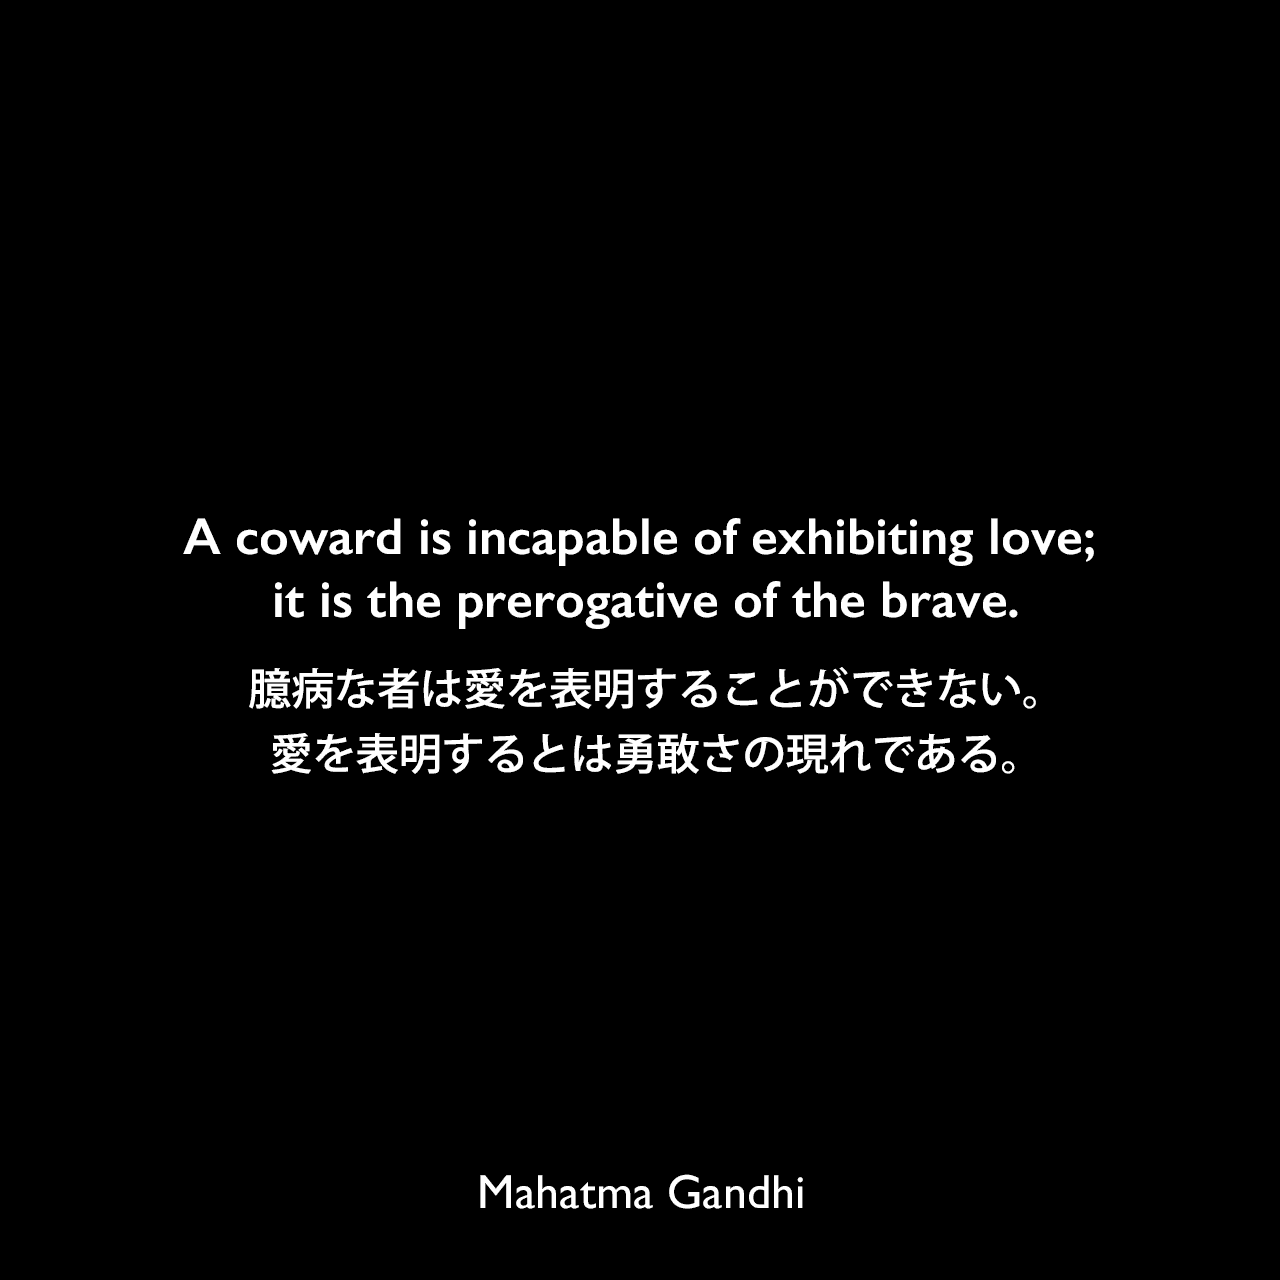 A coward is incapable of exhibiting love; it is the prerogative of the brave.臆病な者は愛を表明することができない。愛を表明するとは勇敢さの現れである。